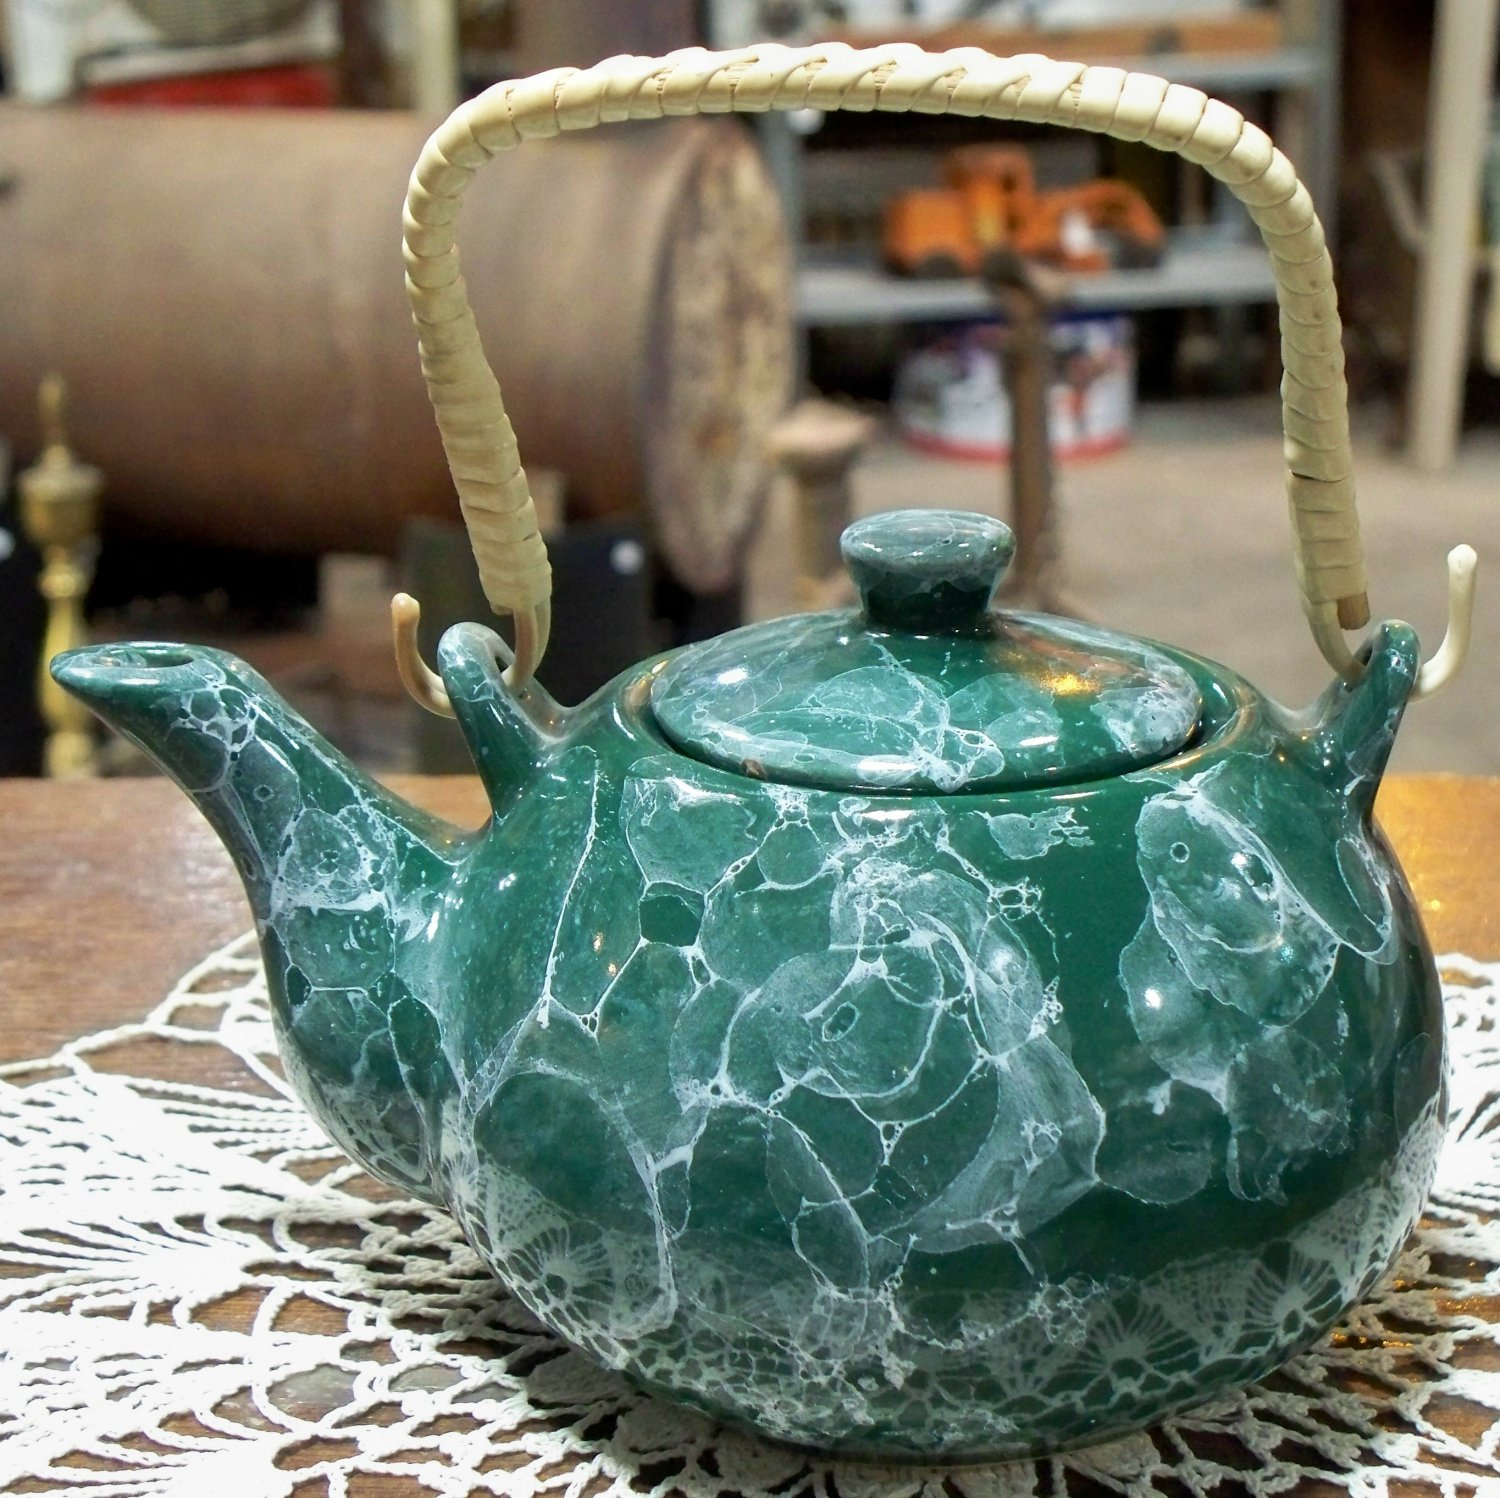 Green Swirl unmarked small porcelain teapot with wood & vinyl? wrapped handle